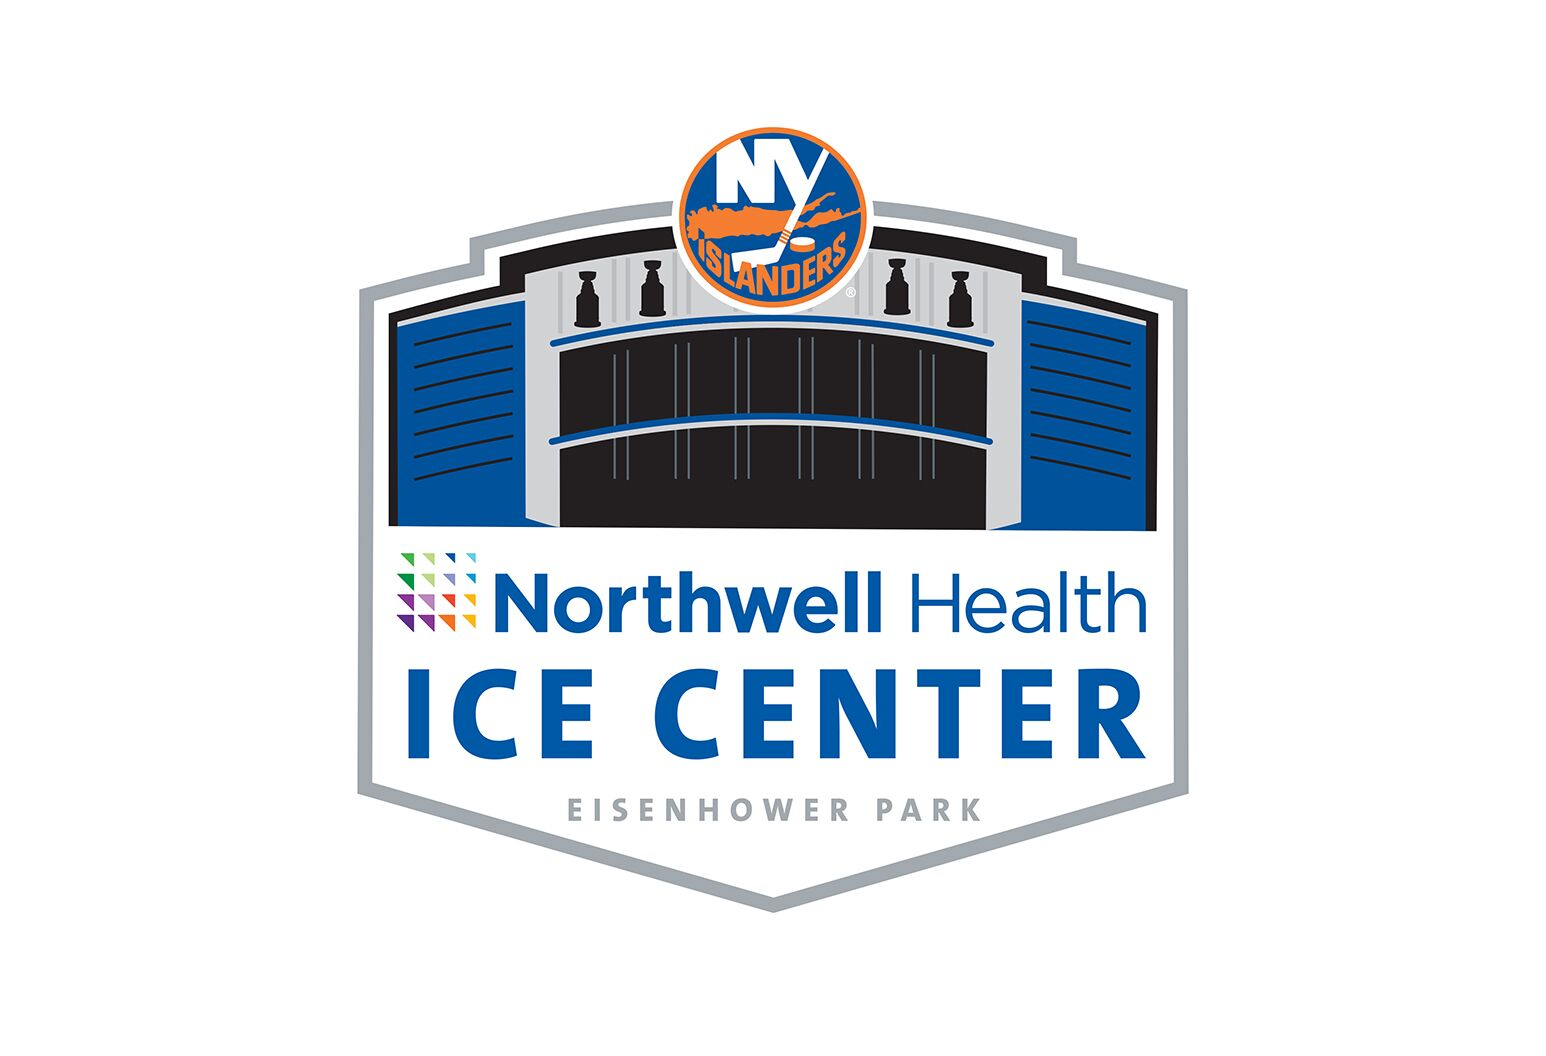 """Northwell Health Ice Center Eisenhower Park"" logo."